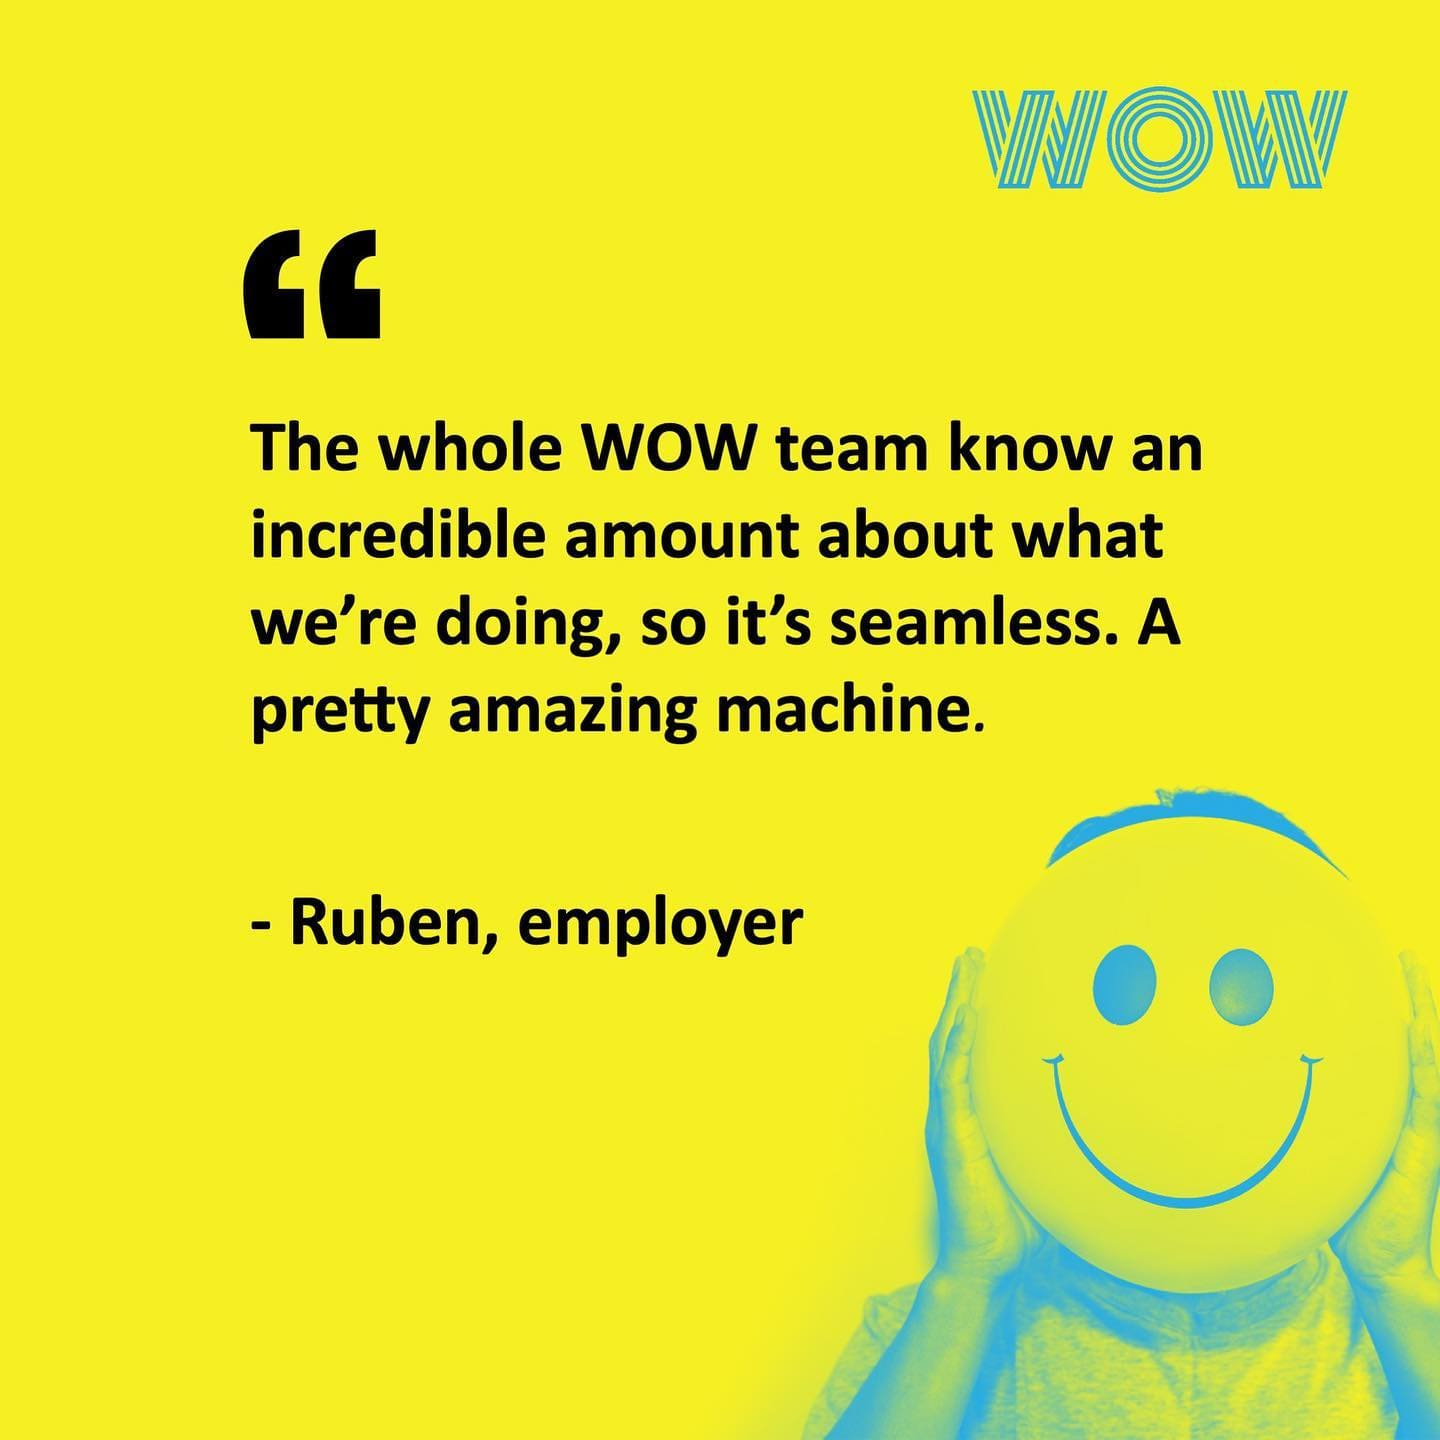 Here's what our client has to say about working with us... Happy Friday!!! #RecruitmentHappy #WorkHappy #DoWhatYouLove #WOW